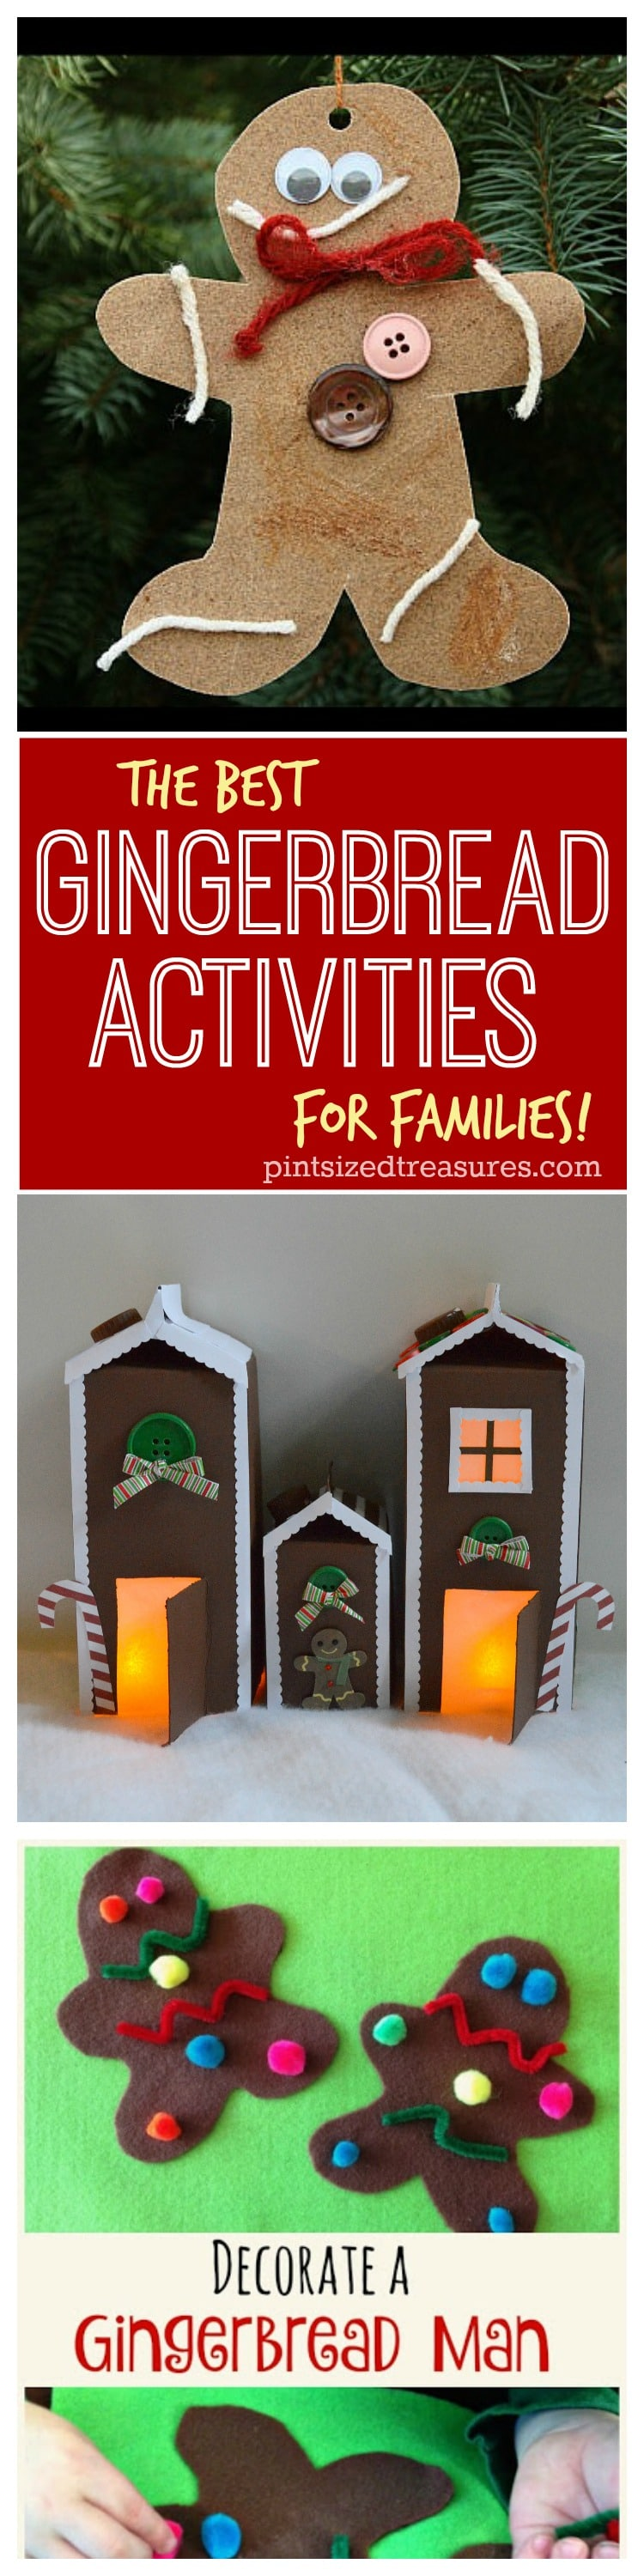 gingerbread activities collage